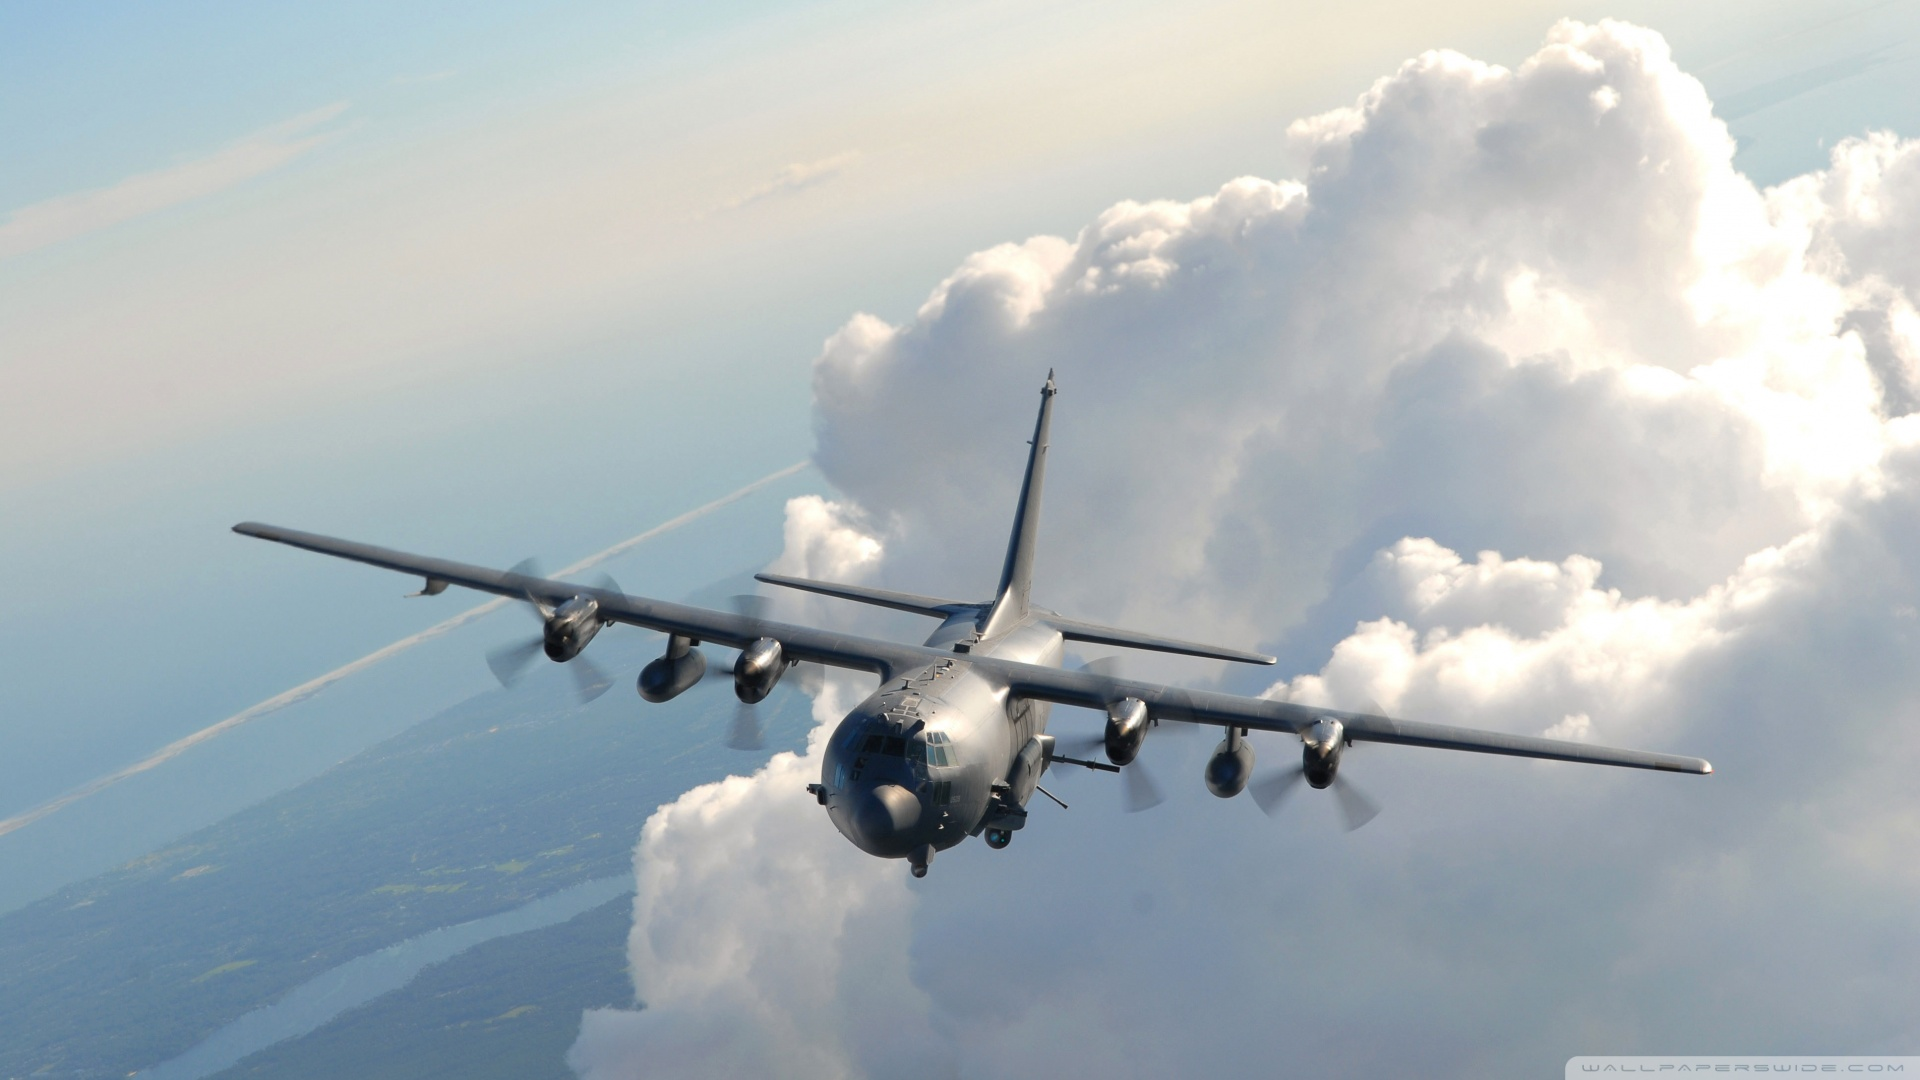 AC 130 Gunship Images crazygalleryinfo 1920x1080